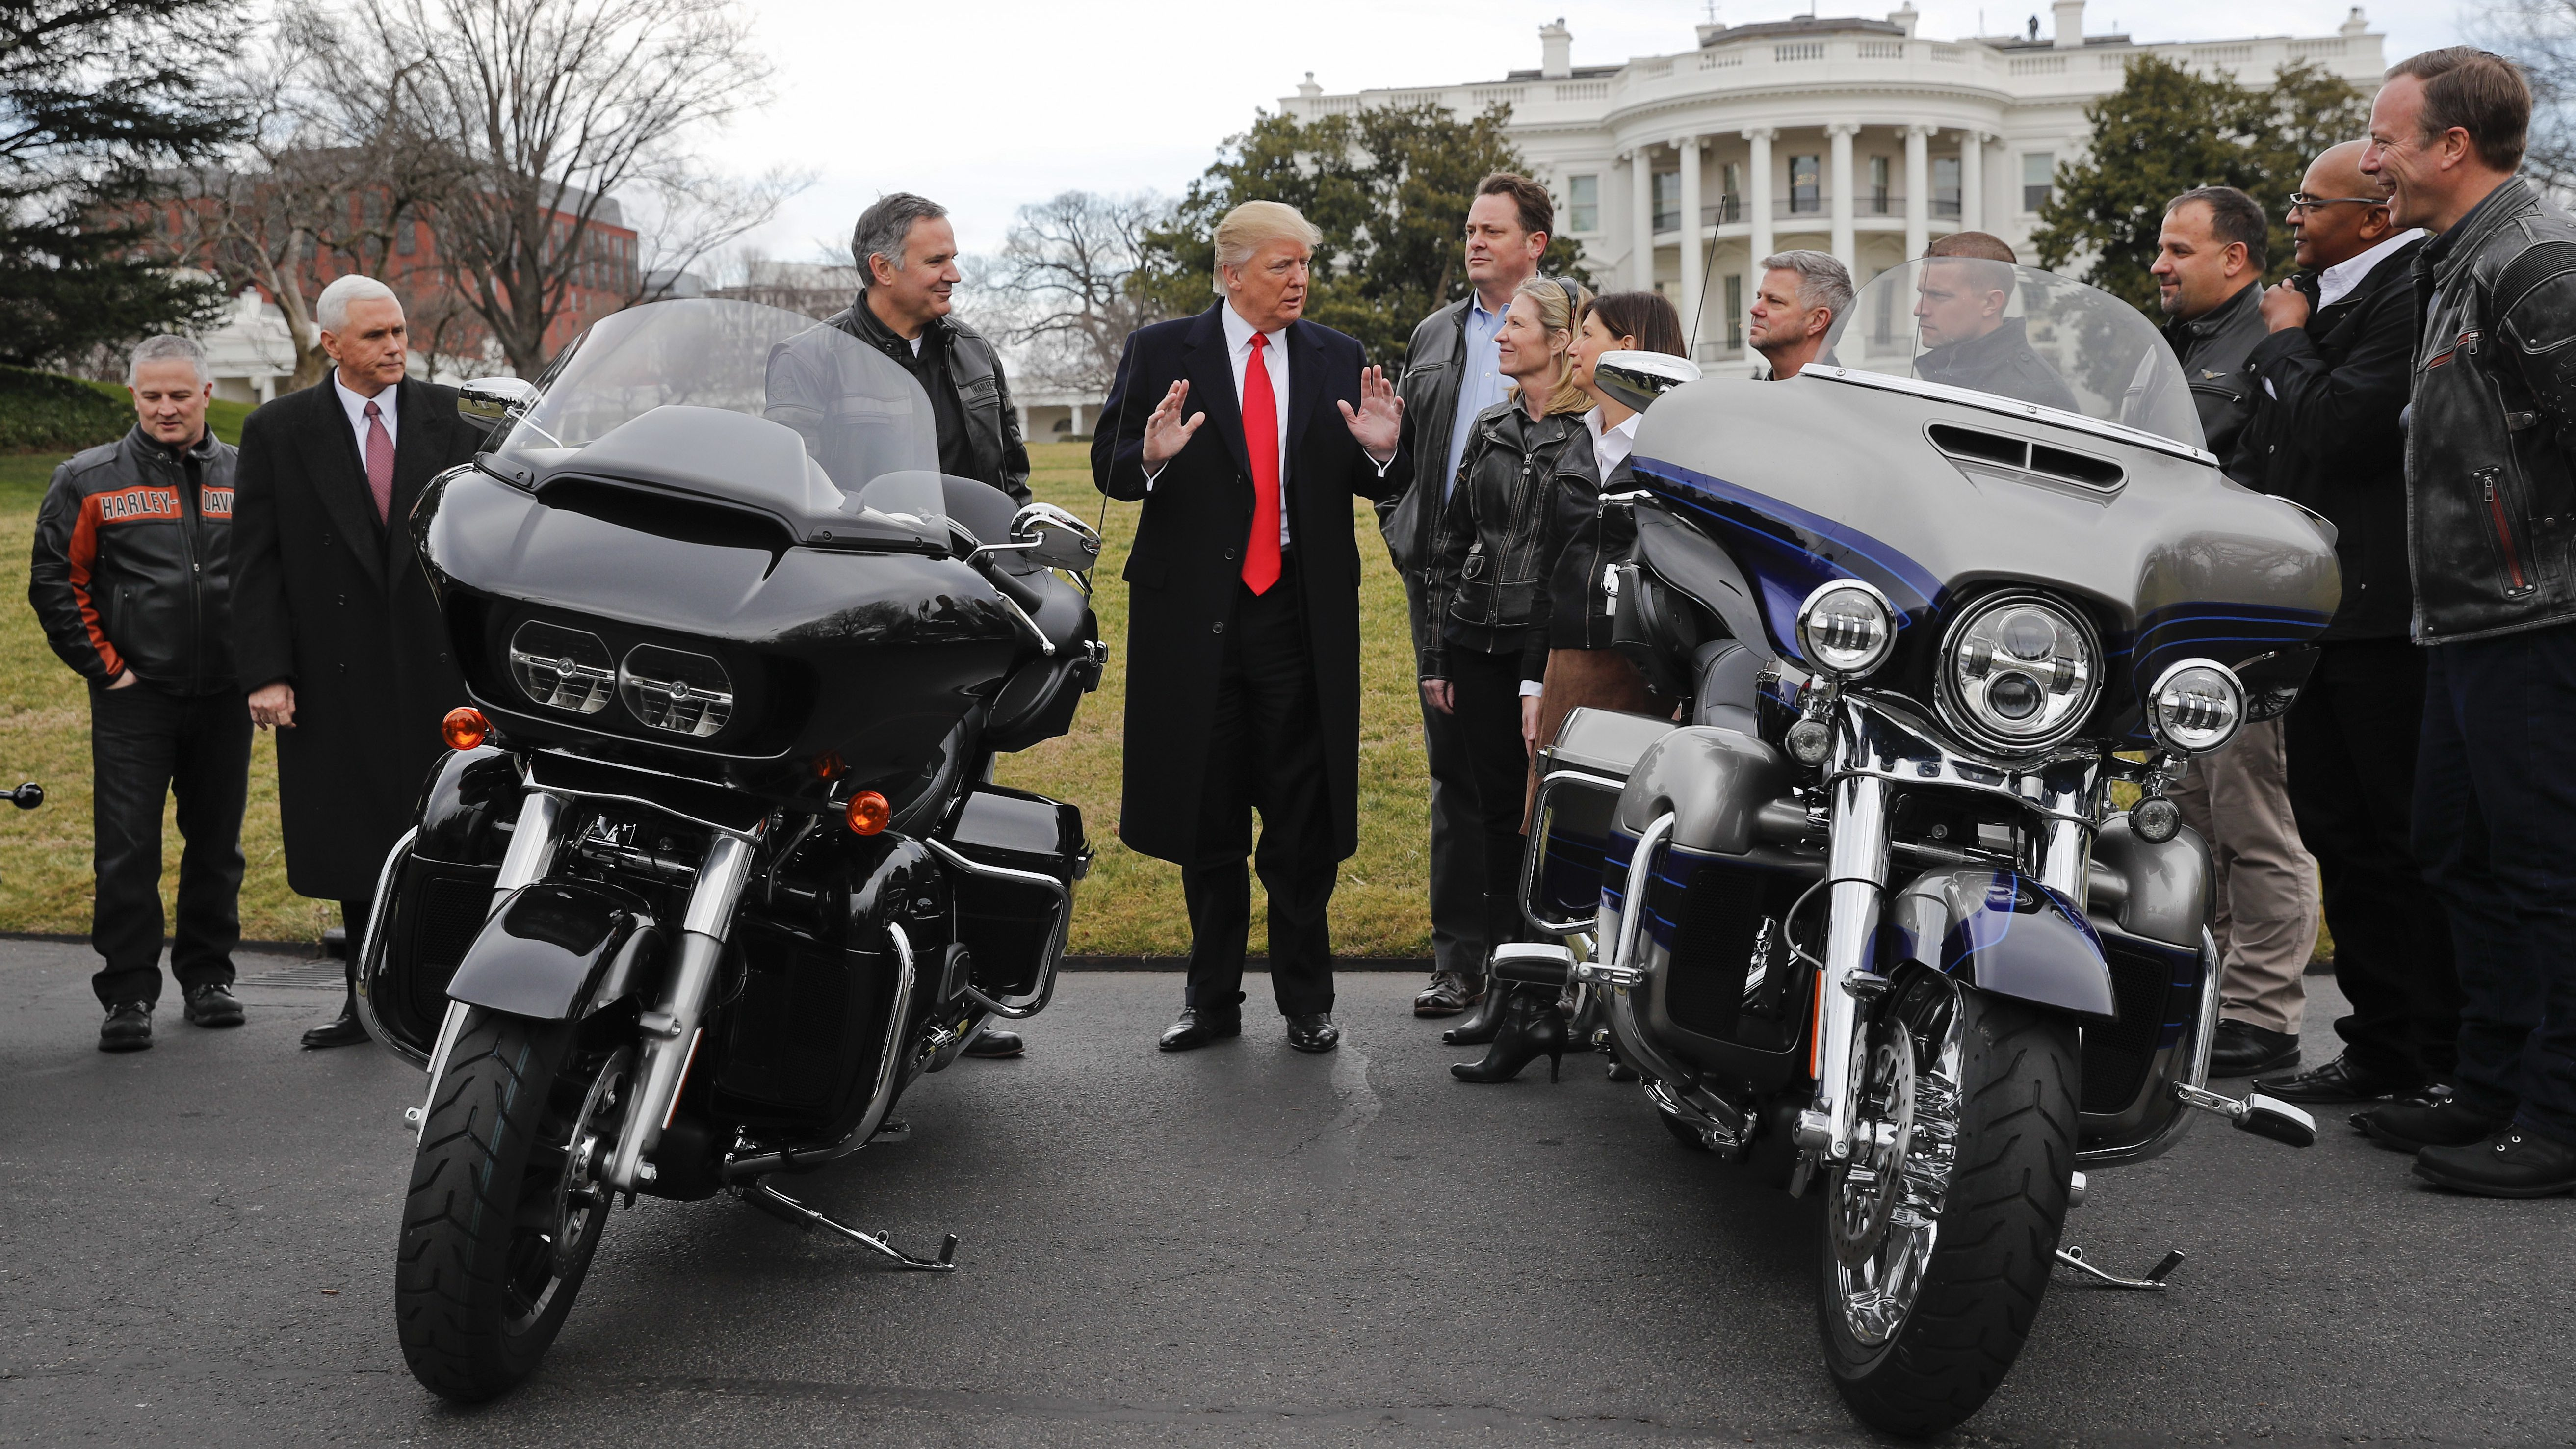 President Donald Trump and Vice President Mike Pence meet with Harley Davidson executives and Union Representatives on the South Lawn of the White House in Washington, Thursday, Feb. 2, 2017. ()